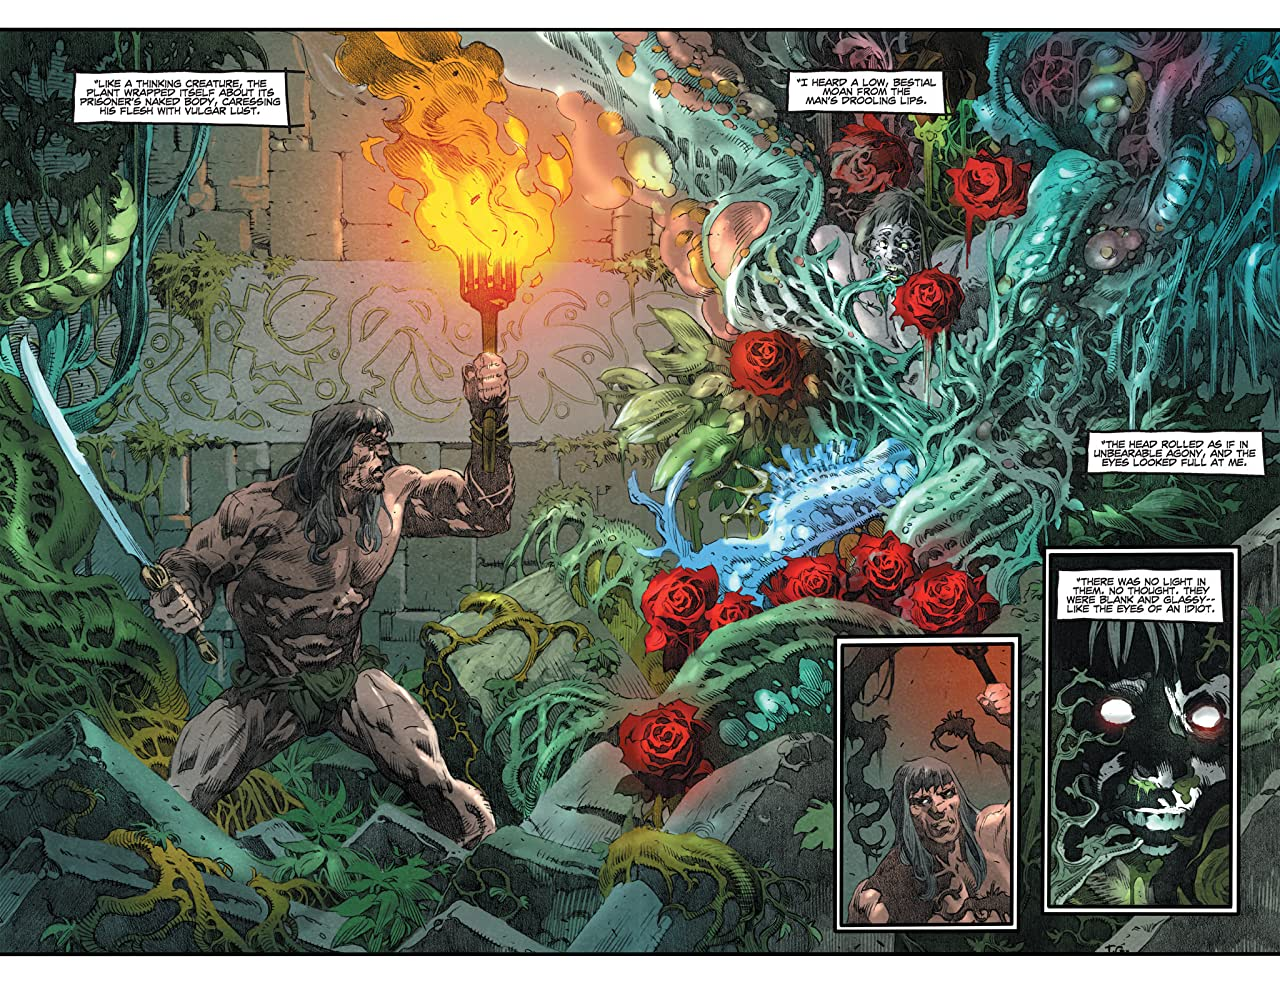 King Conan: The Scarlet Citadel #3